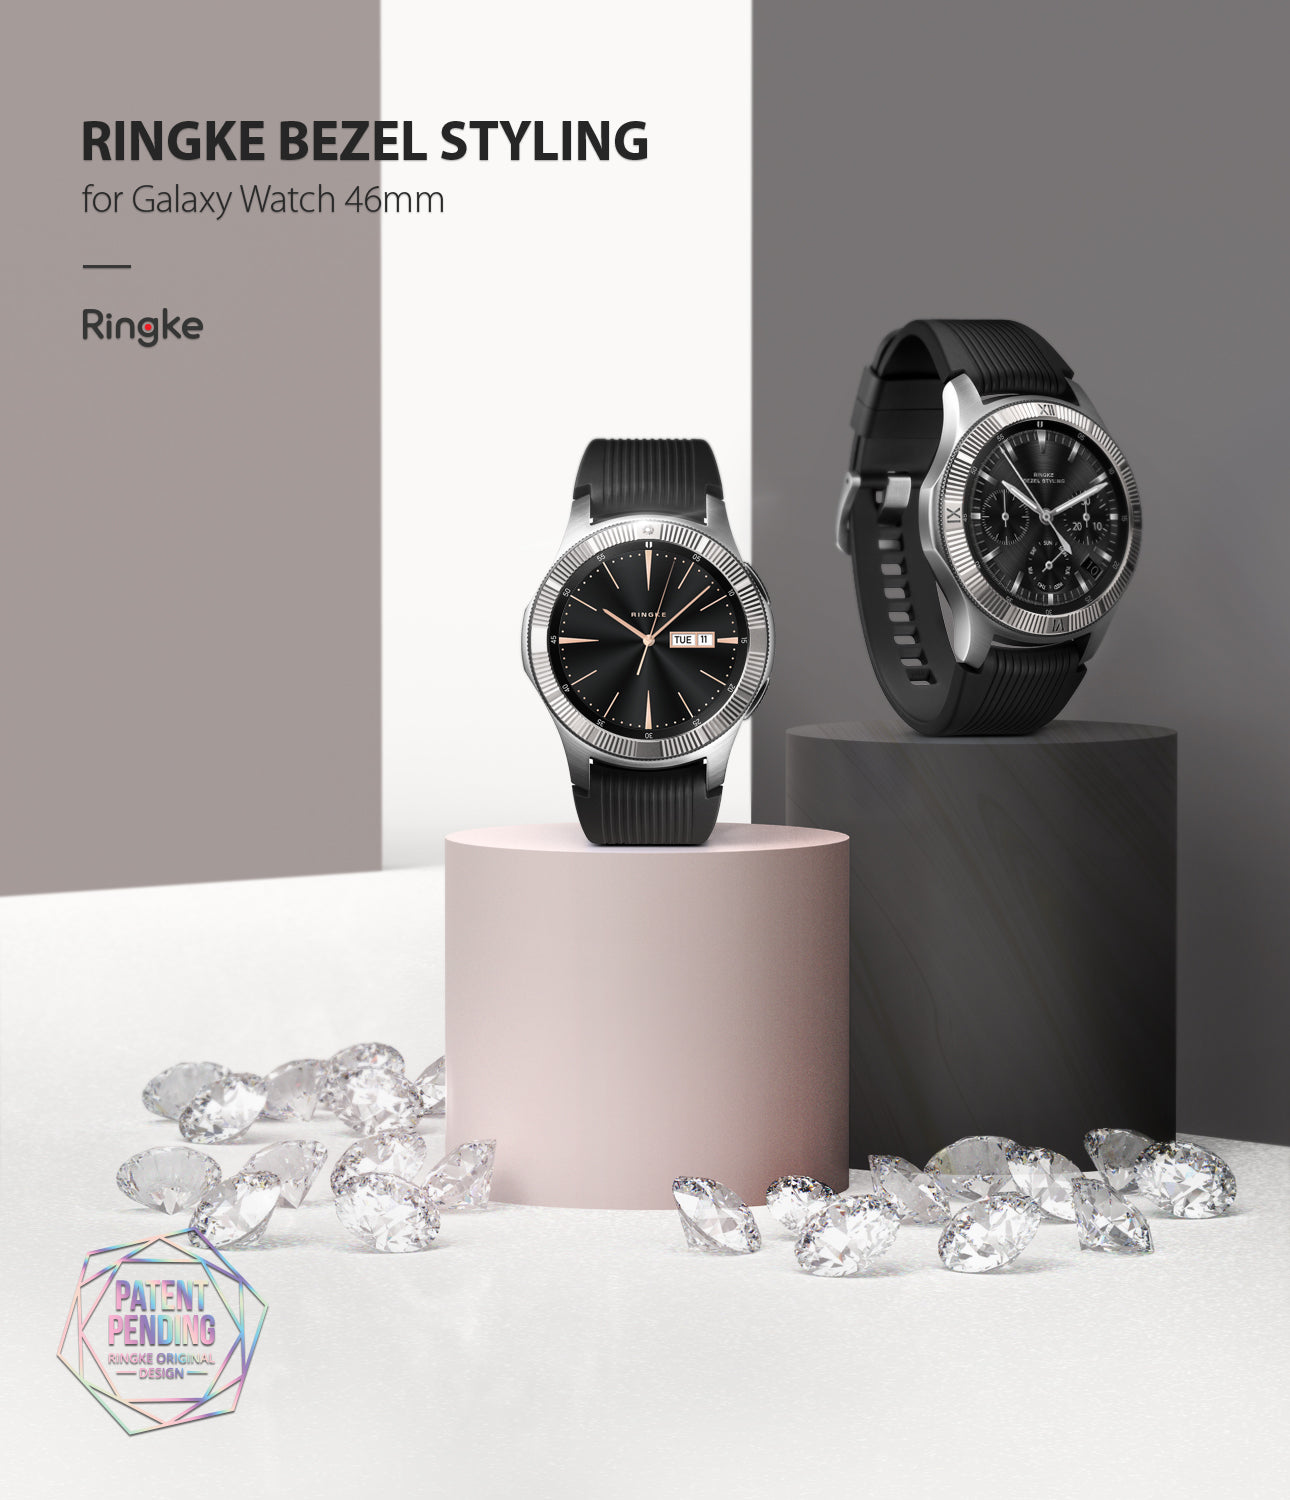 ringke bezel styling for galaxy watch 46mm showing 46-13 on